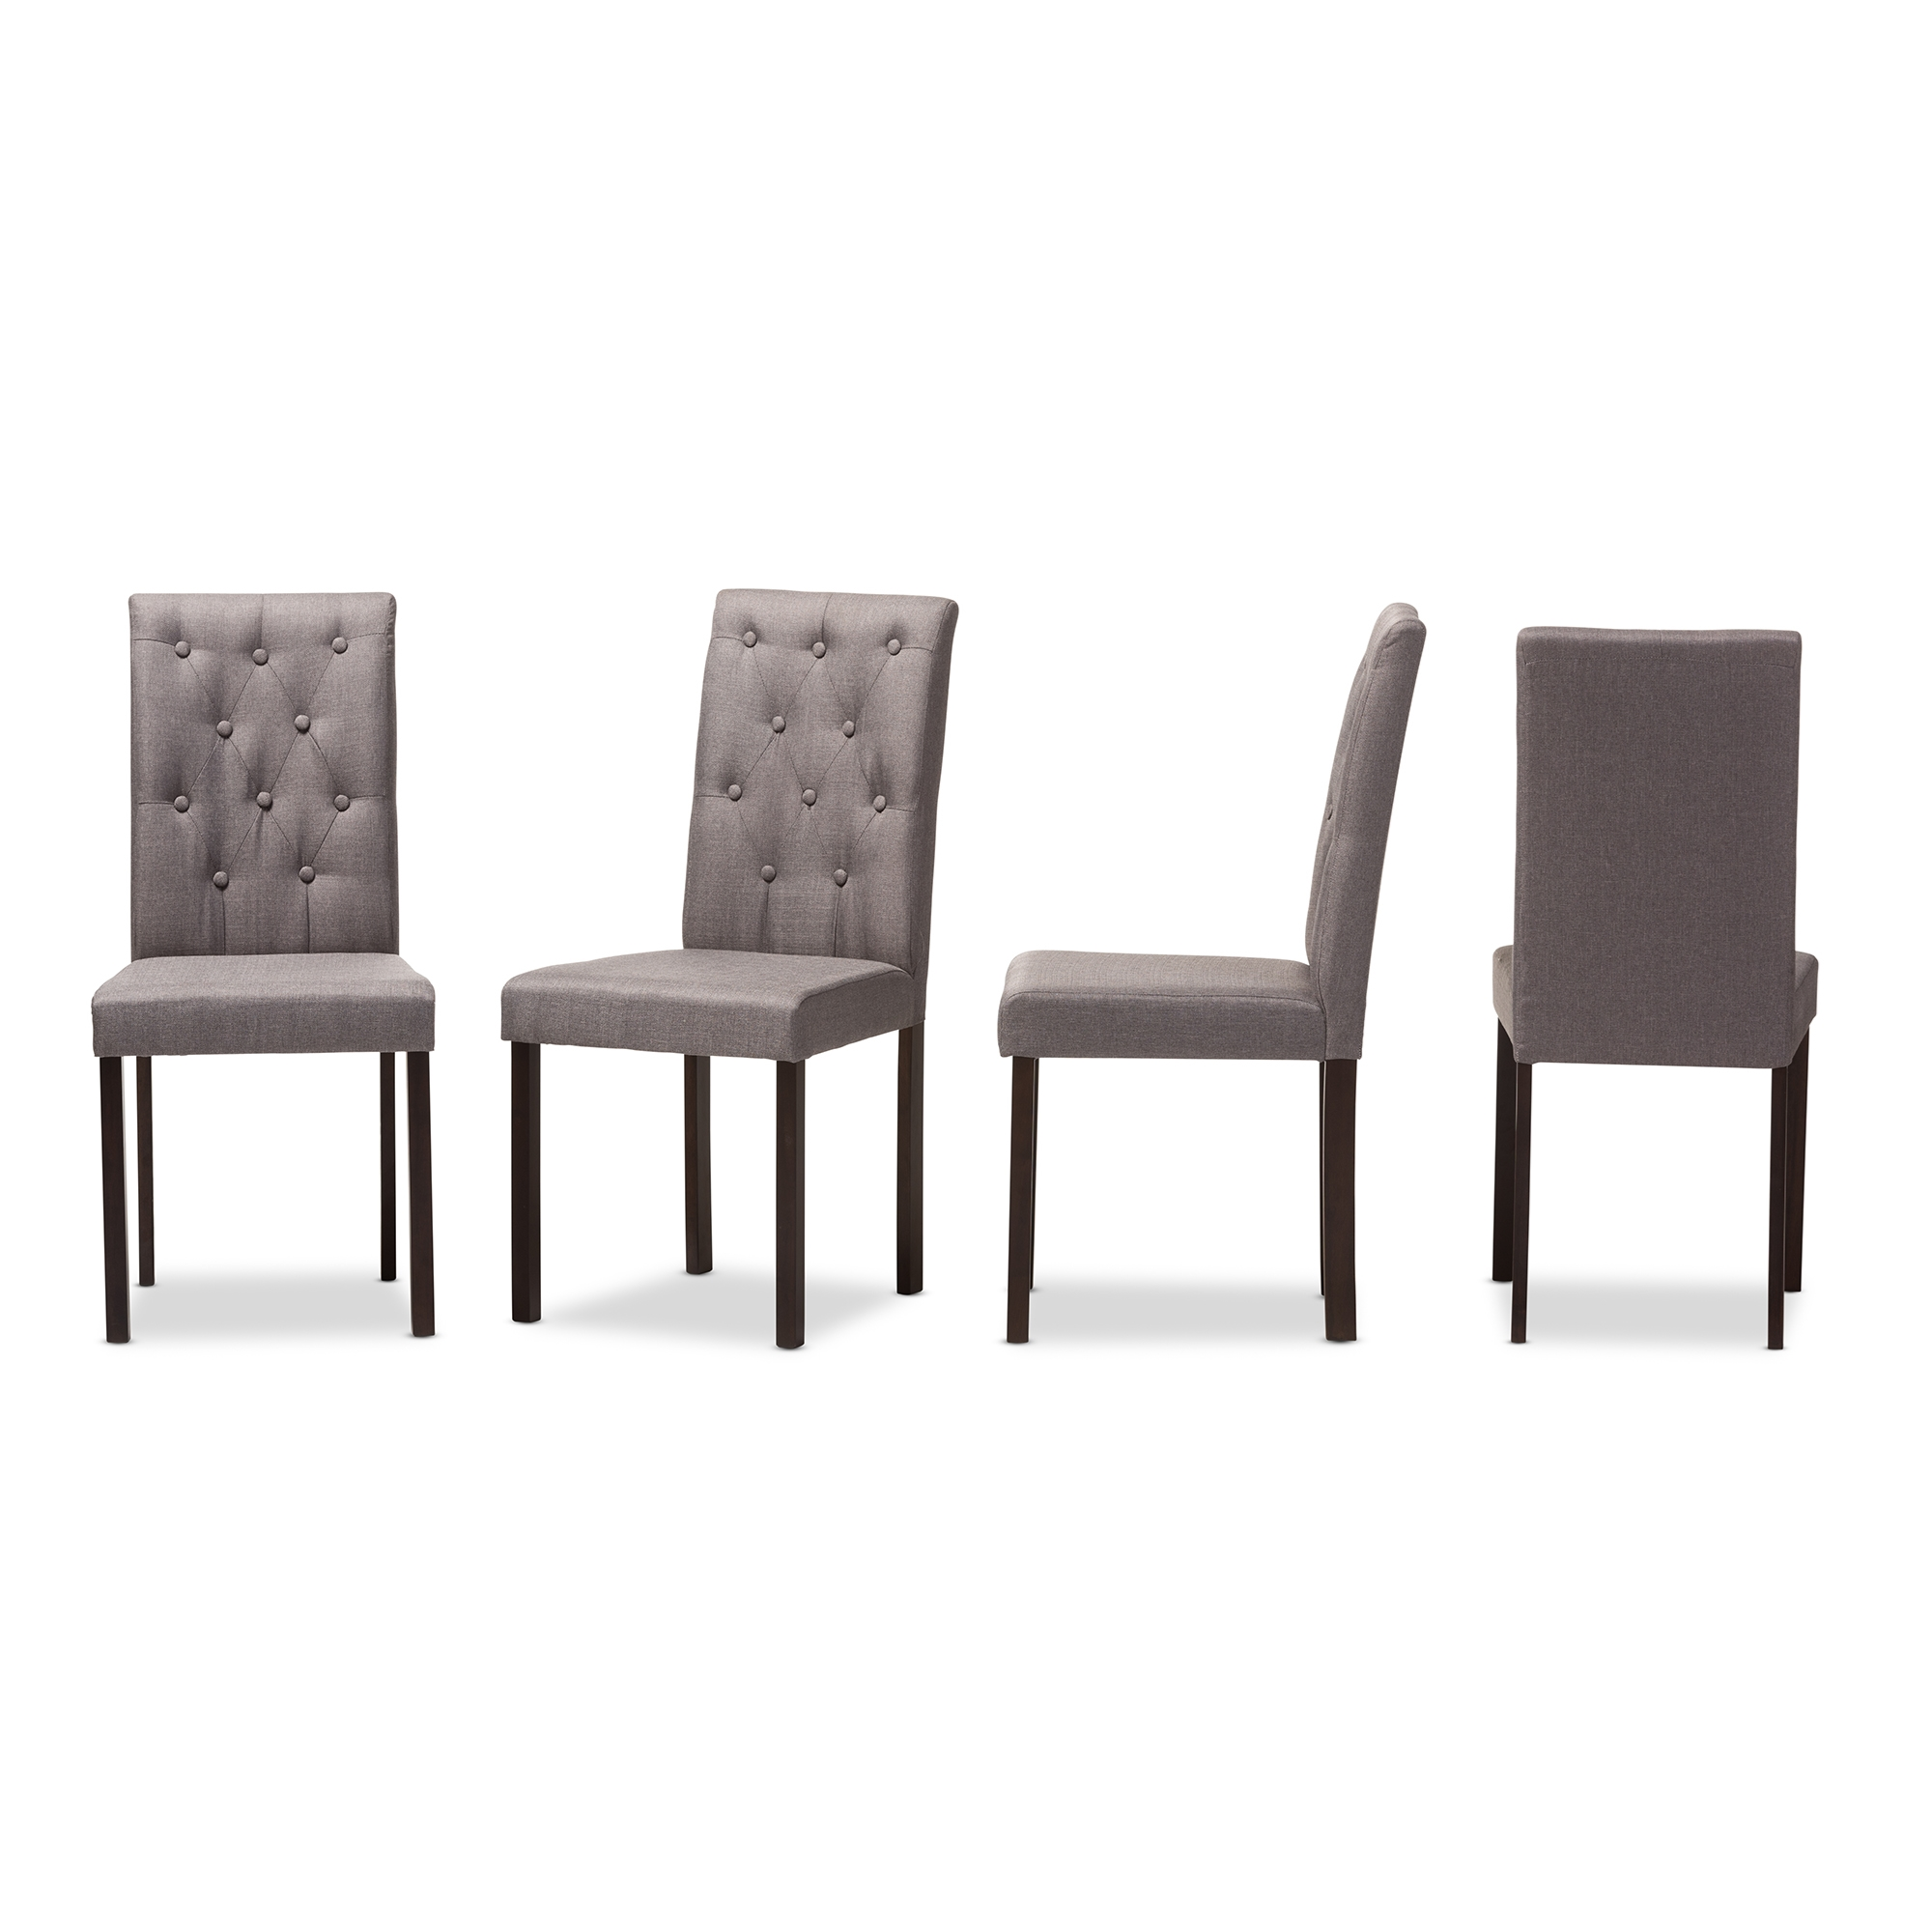 baxton studio gardner modern and dark brown finished grey fabric upholstered dining chair set - White Wood Dining Chairs